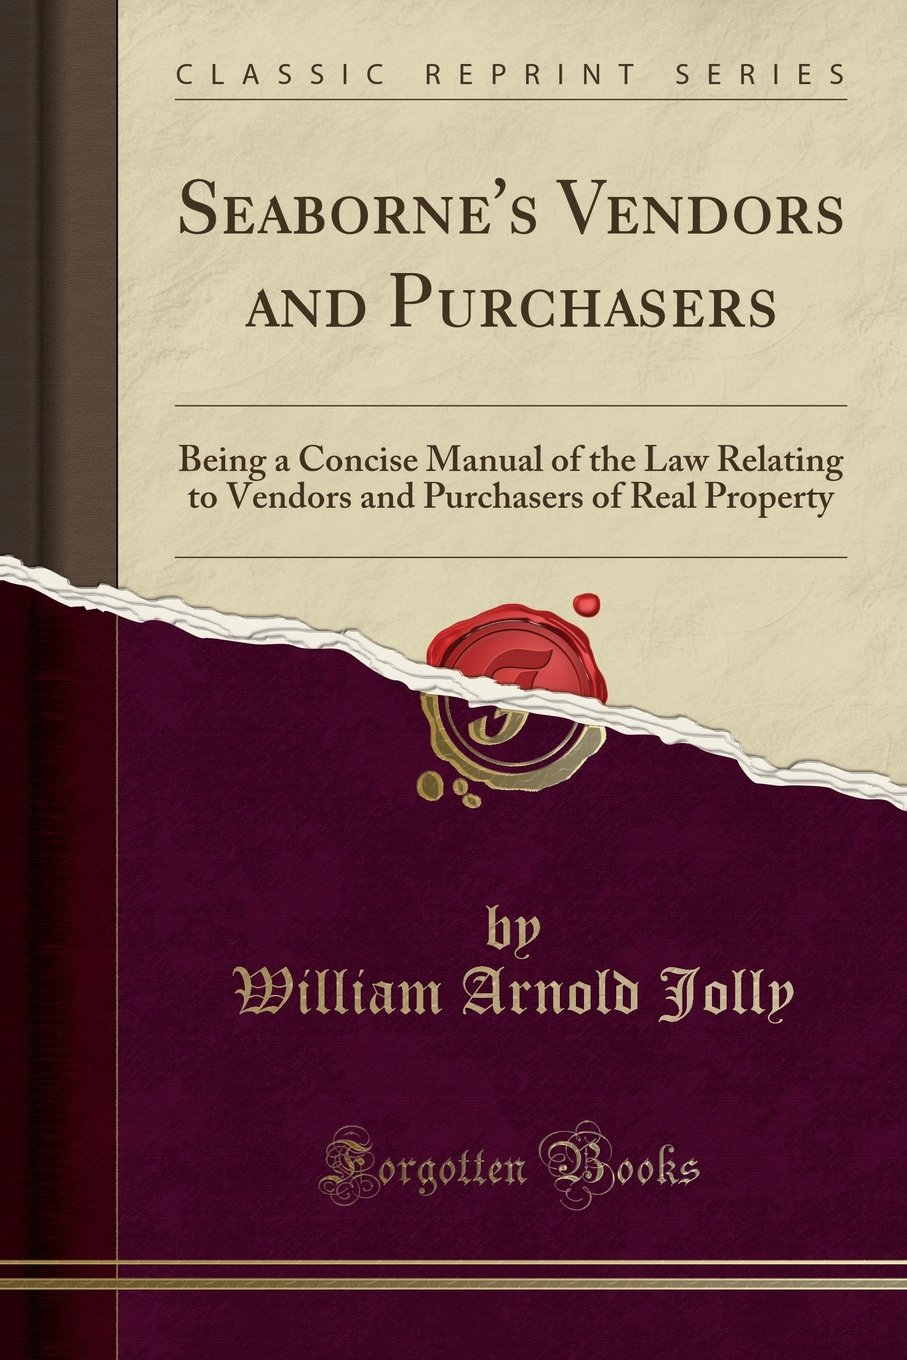 Seaborne's Vendors and Purchasers: Being a Concise Manual of the Law Relating to Vendors and Purchasers of Real Property (Classic Reprint) pdf epub